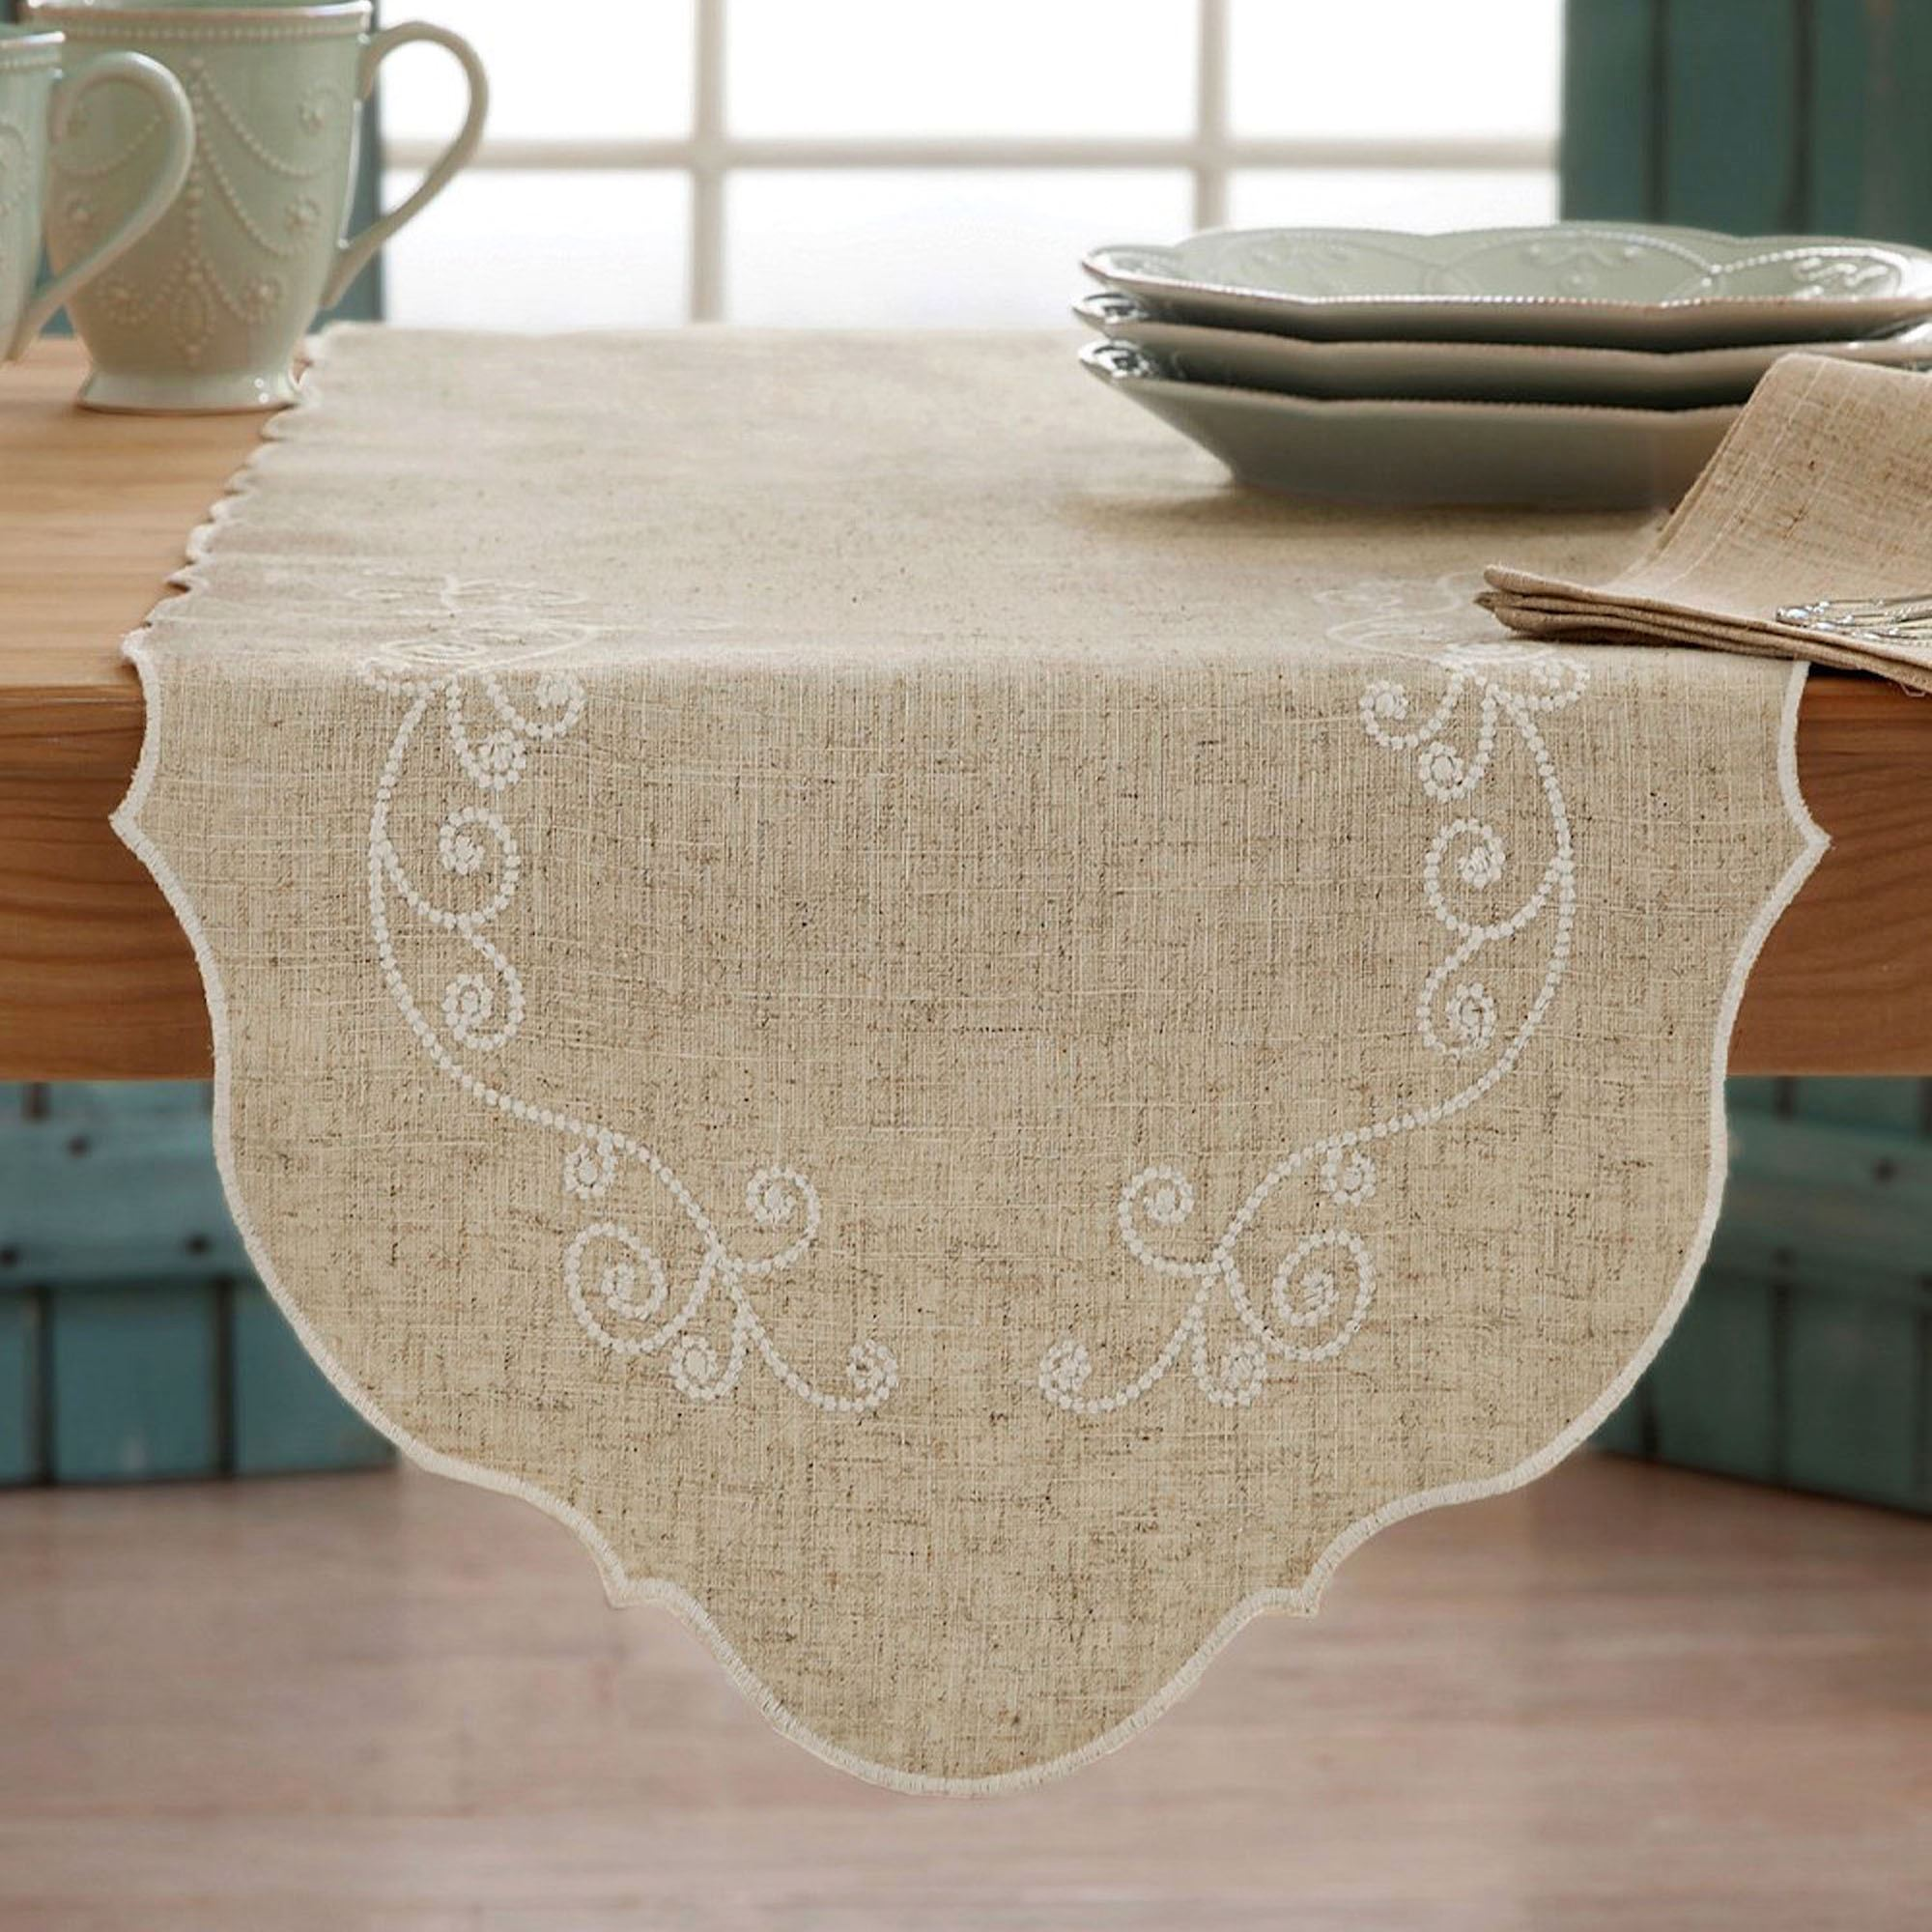 Lenox French Perle Embroidered Table Linens